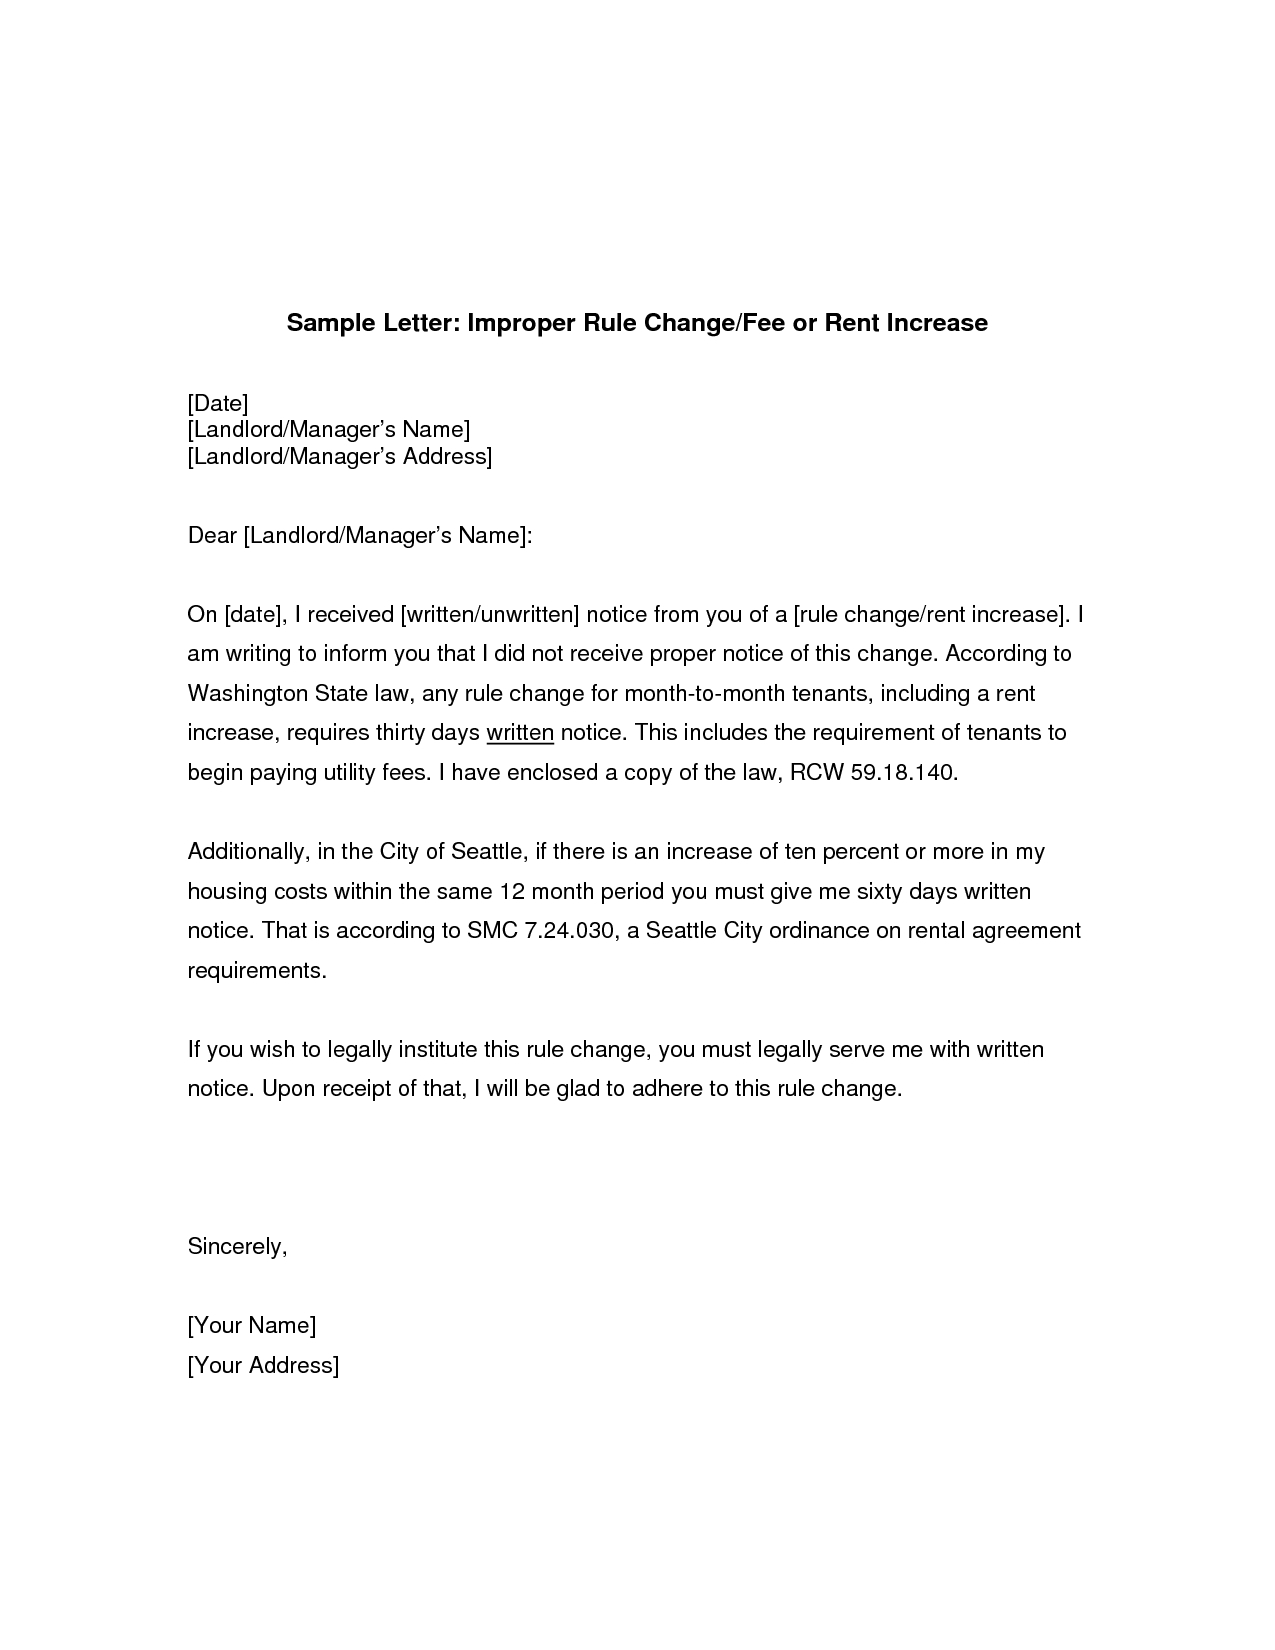 Rent Reduction Letter Template - Rent Increase Sample Letter Legal Documents